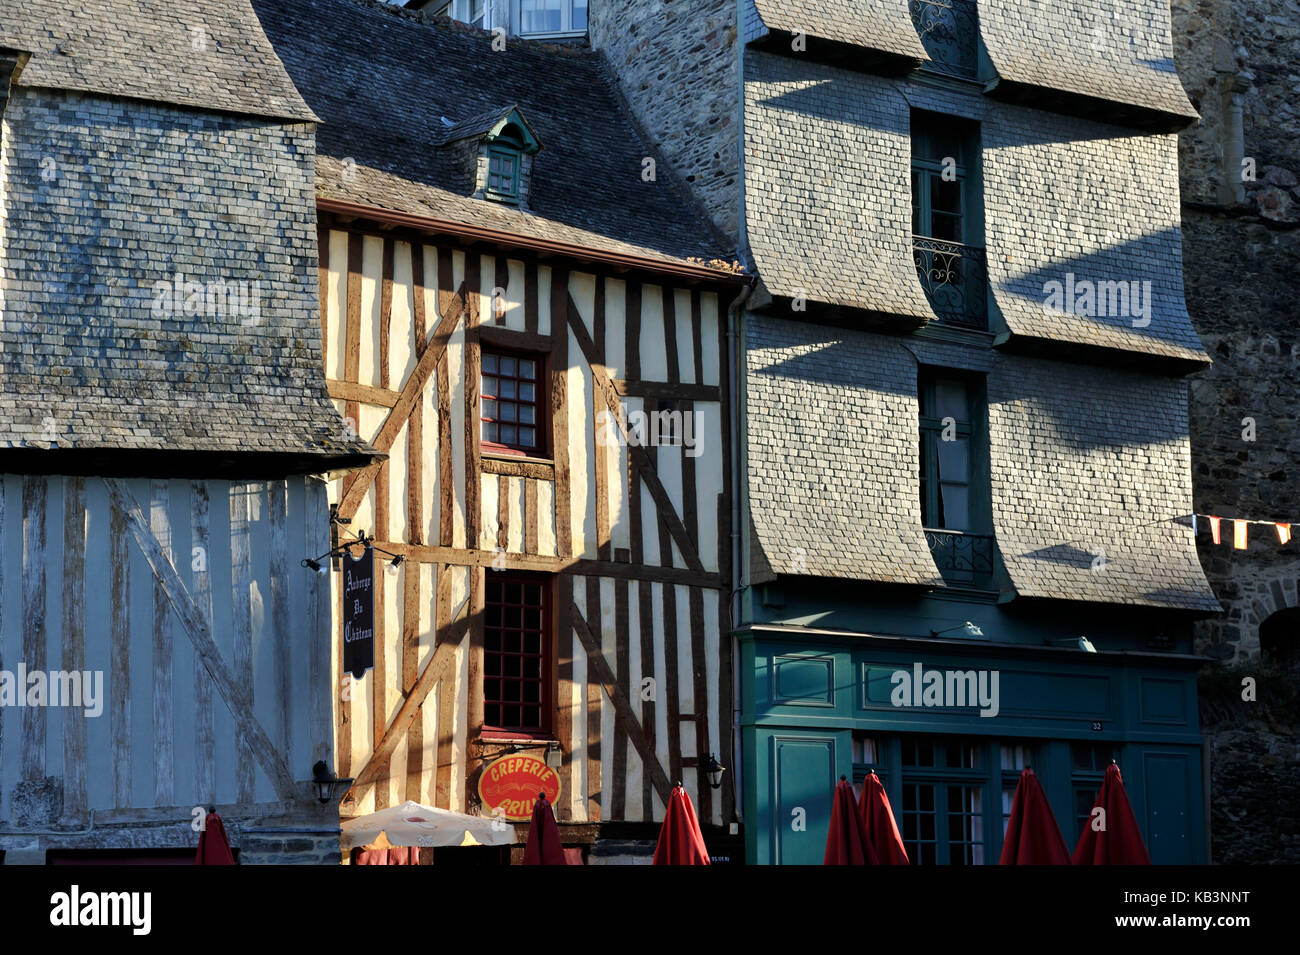 France, Ille-et-Vilaine, Vitré, stop on the Way of St James, the old town, Embas street - Stock Image